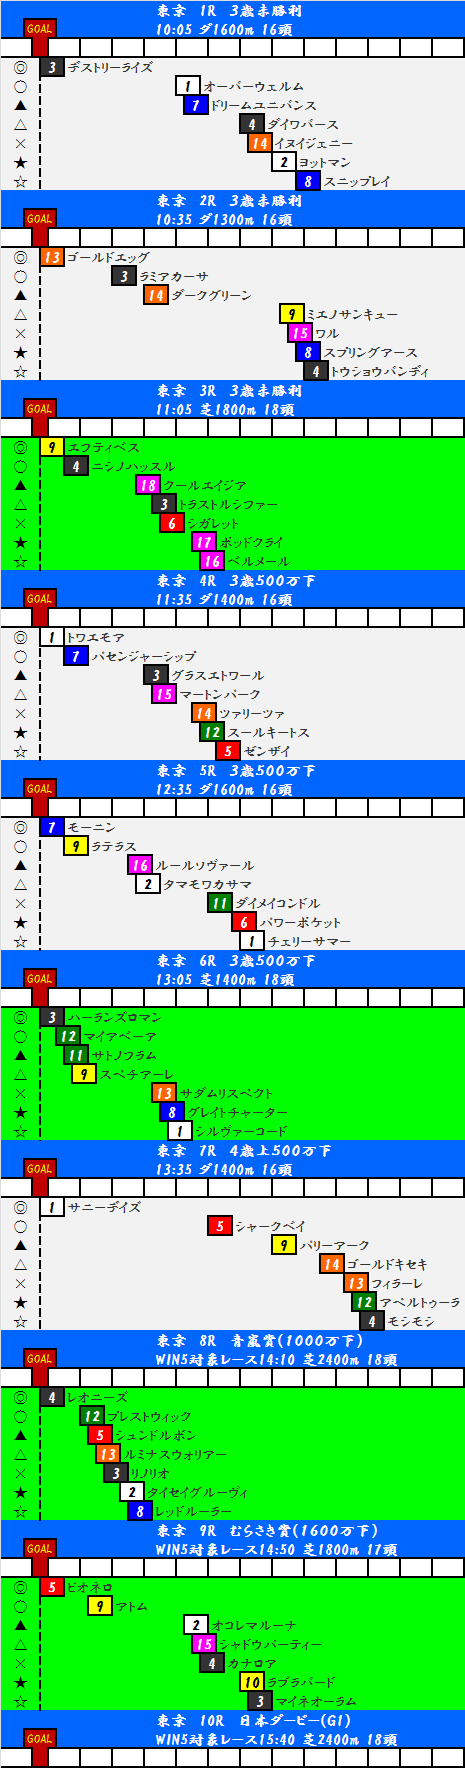 2015053101.png